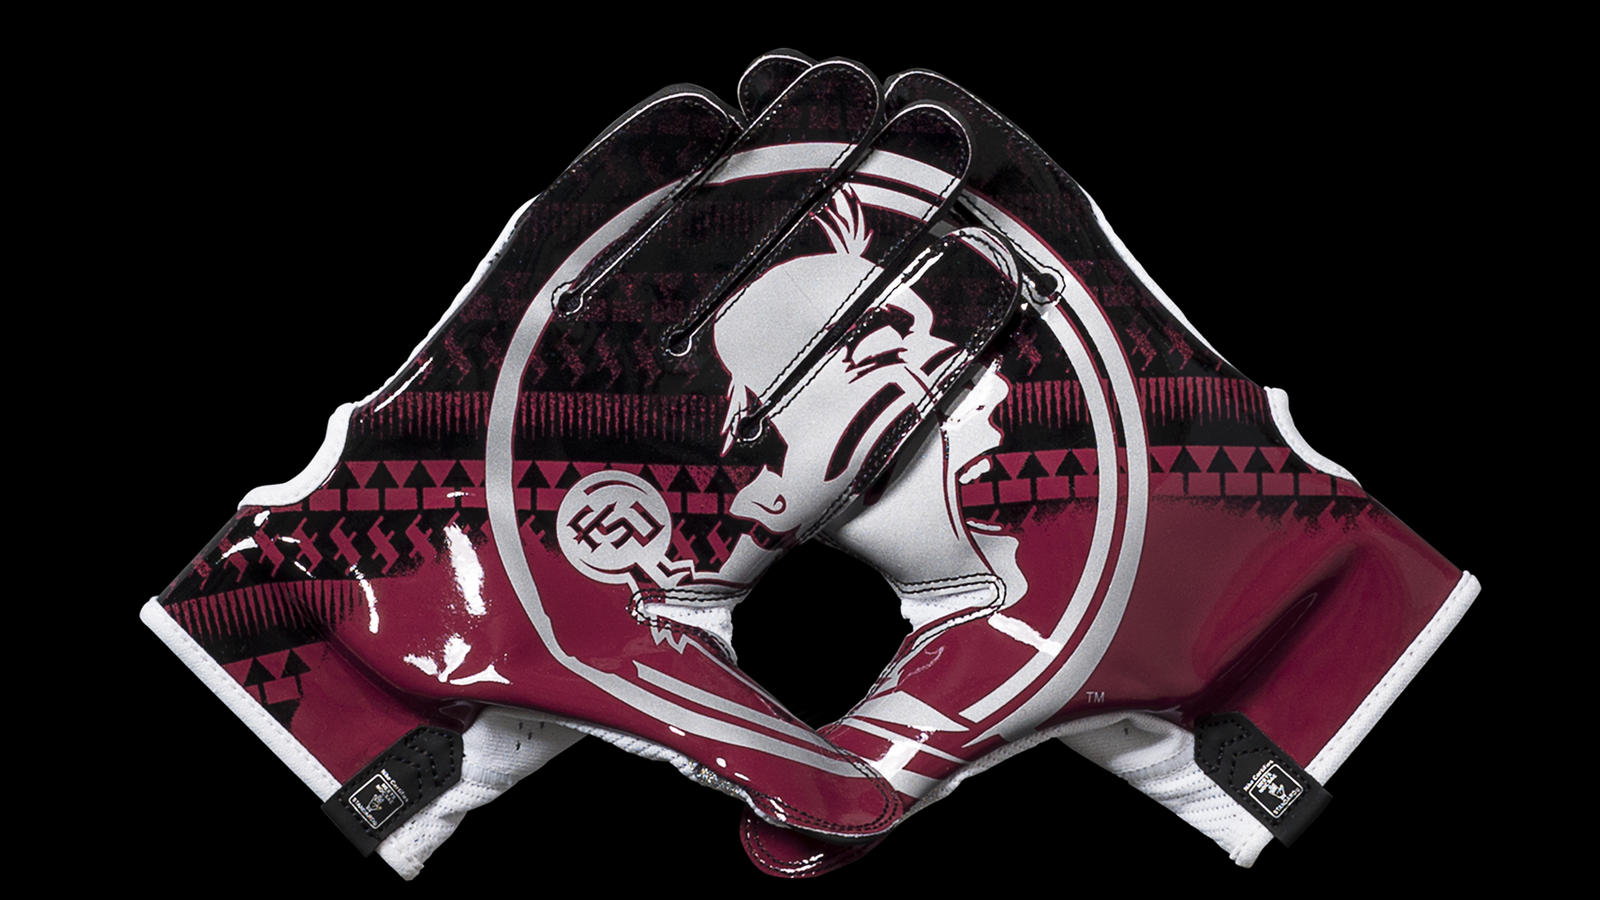 44841_253264_HO14_NFB_NCAA_Gloves_Florida